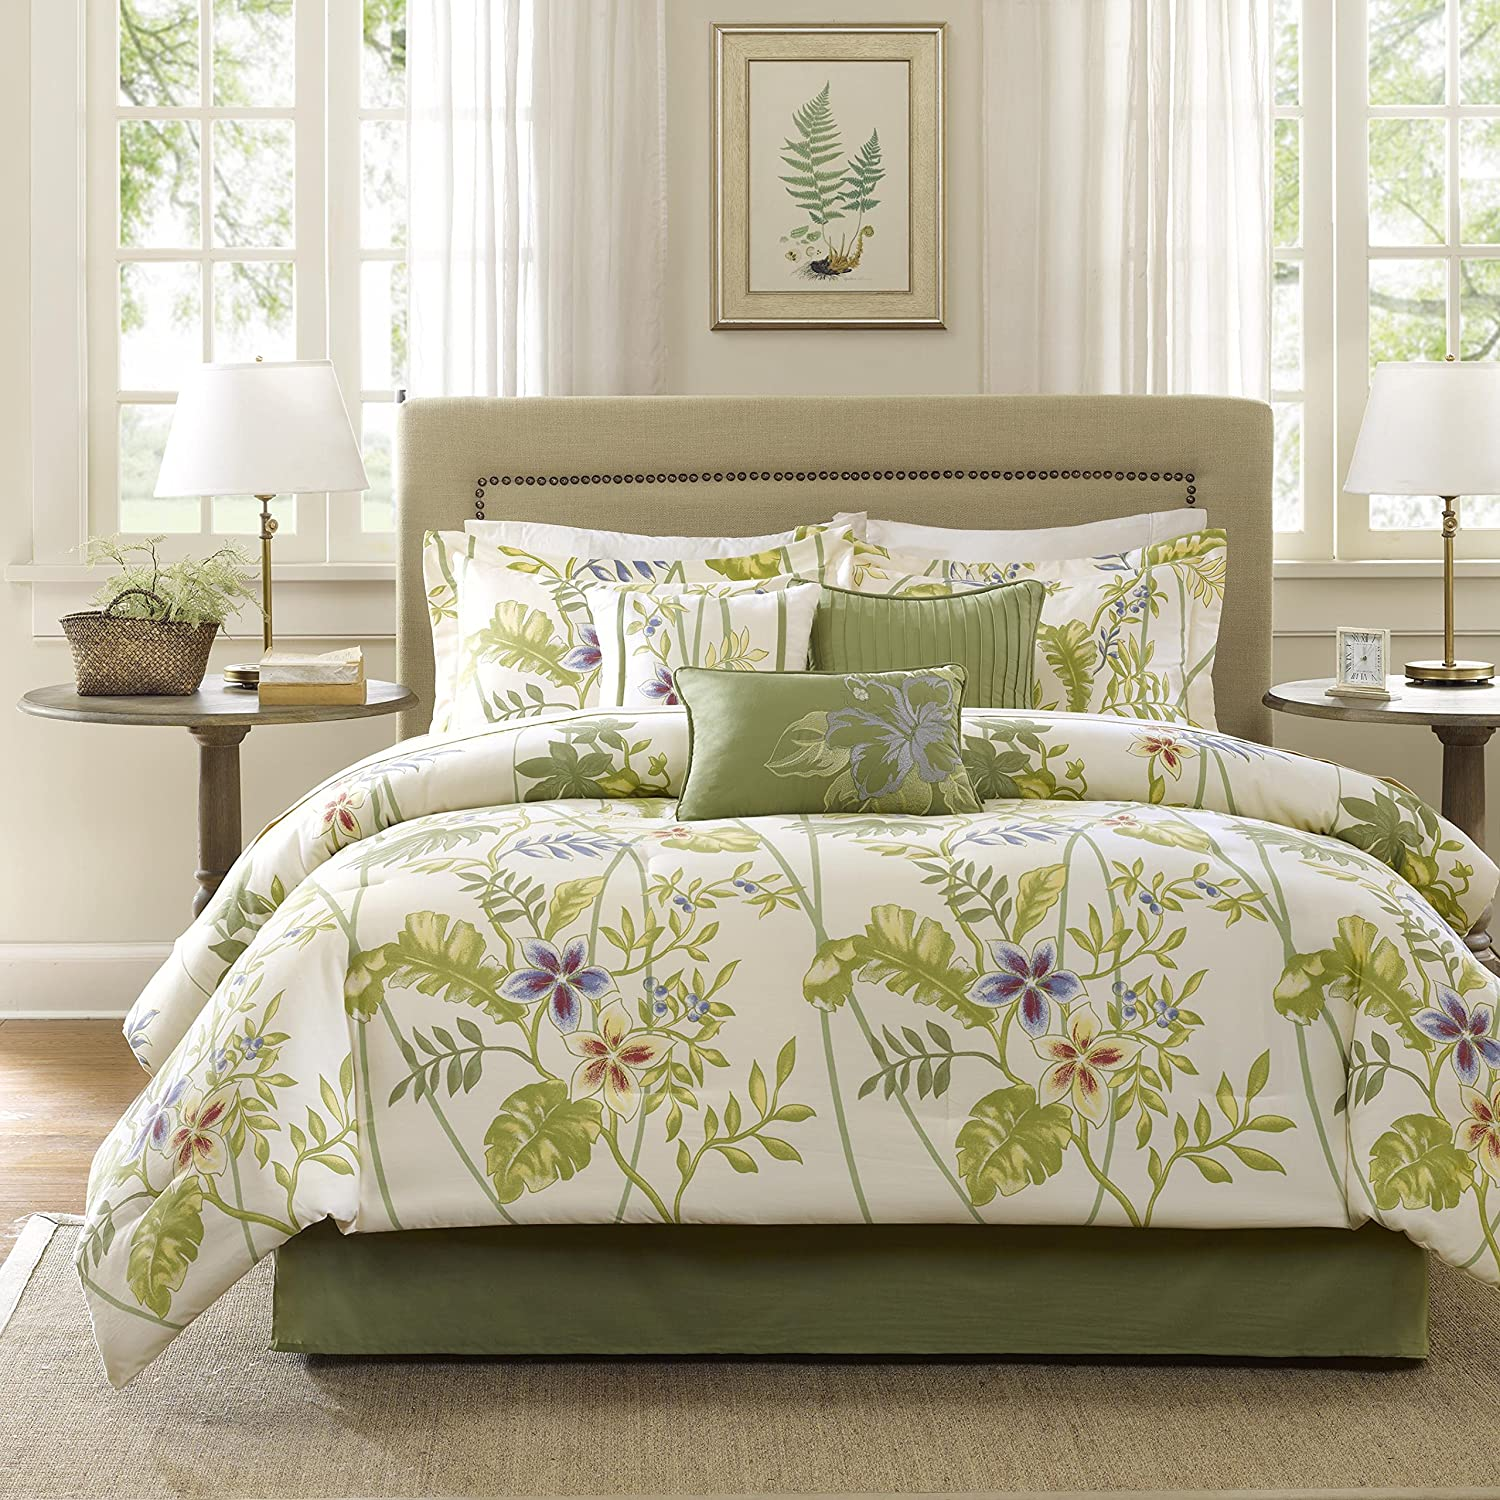 Fresh Amazon.com: Madison Park Kannapali Queen Size Bed Comforter Set  UB11